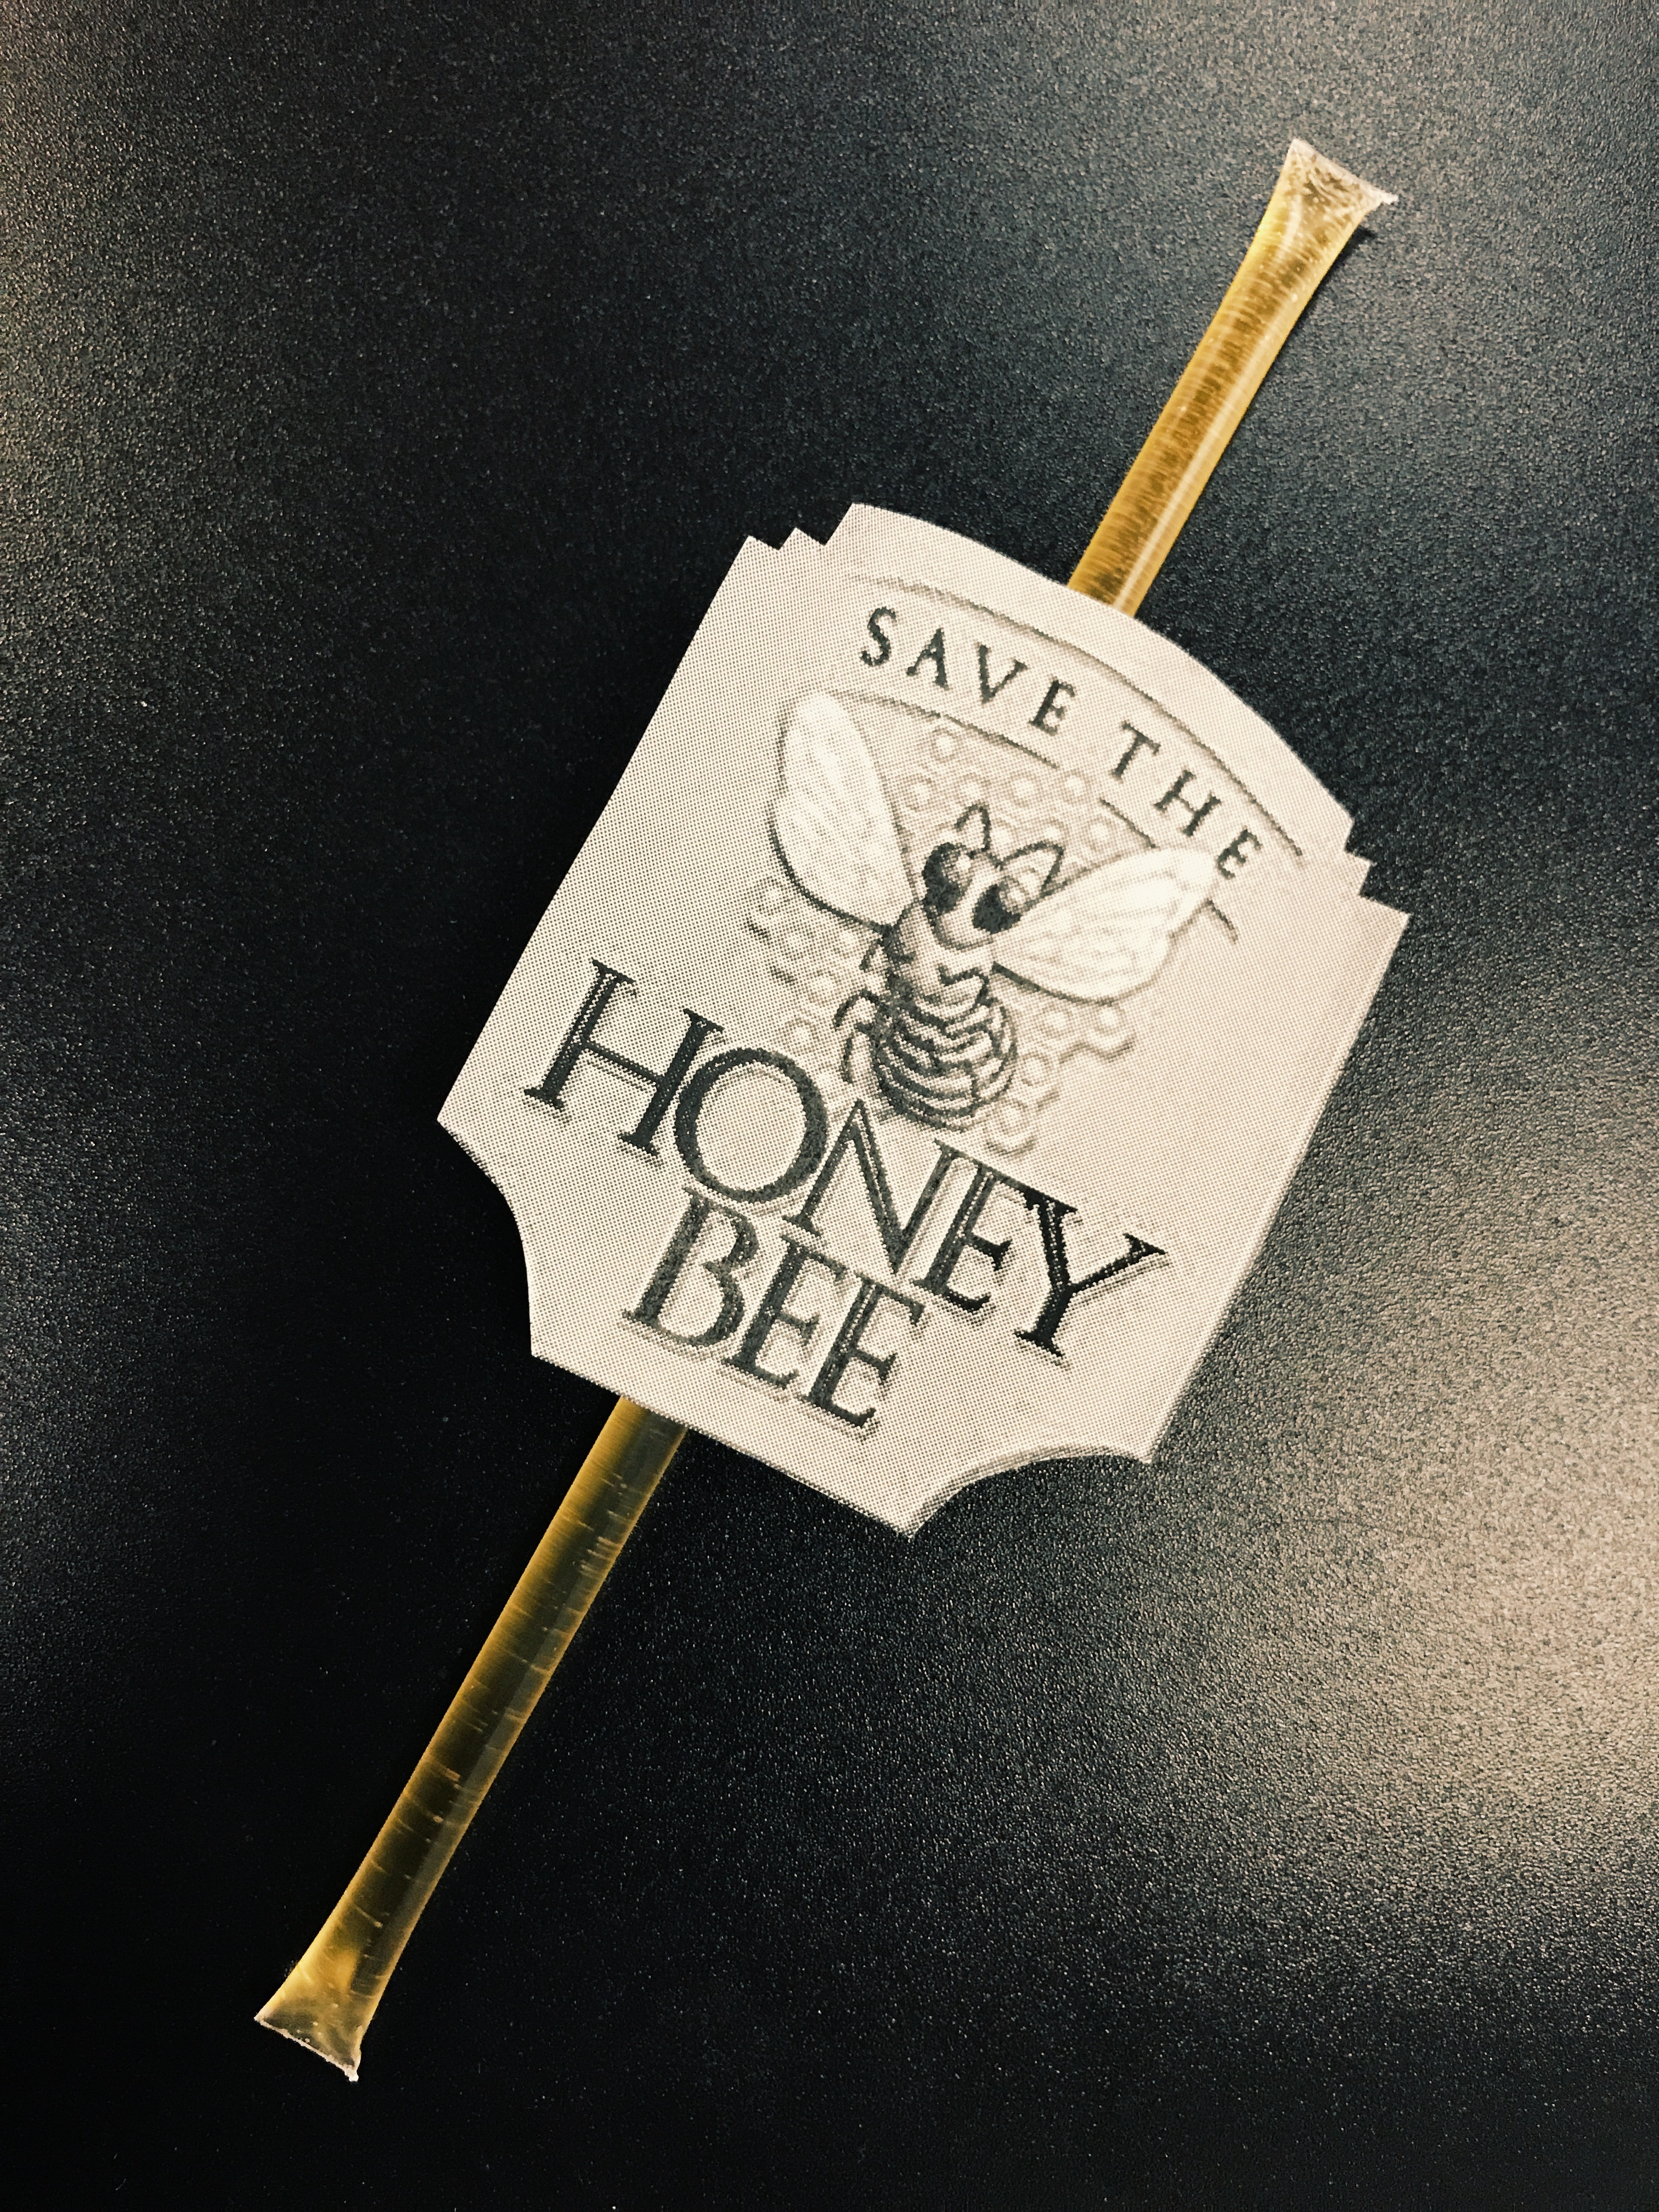 Phoenix Public Speaking visual aids save the honey bees